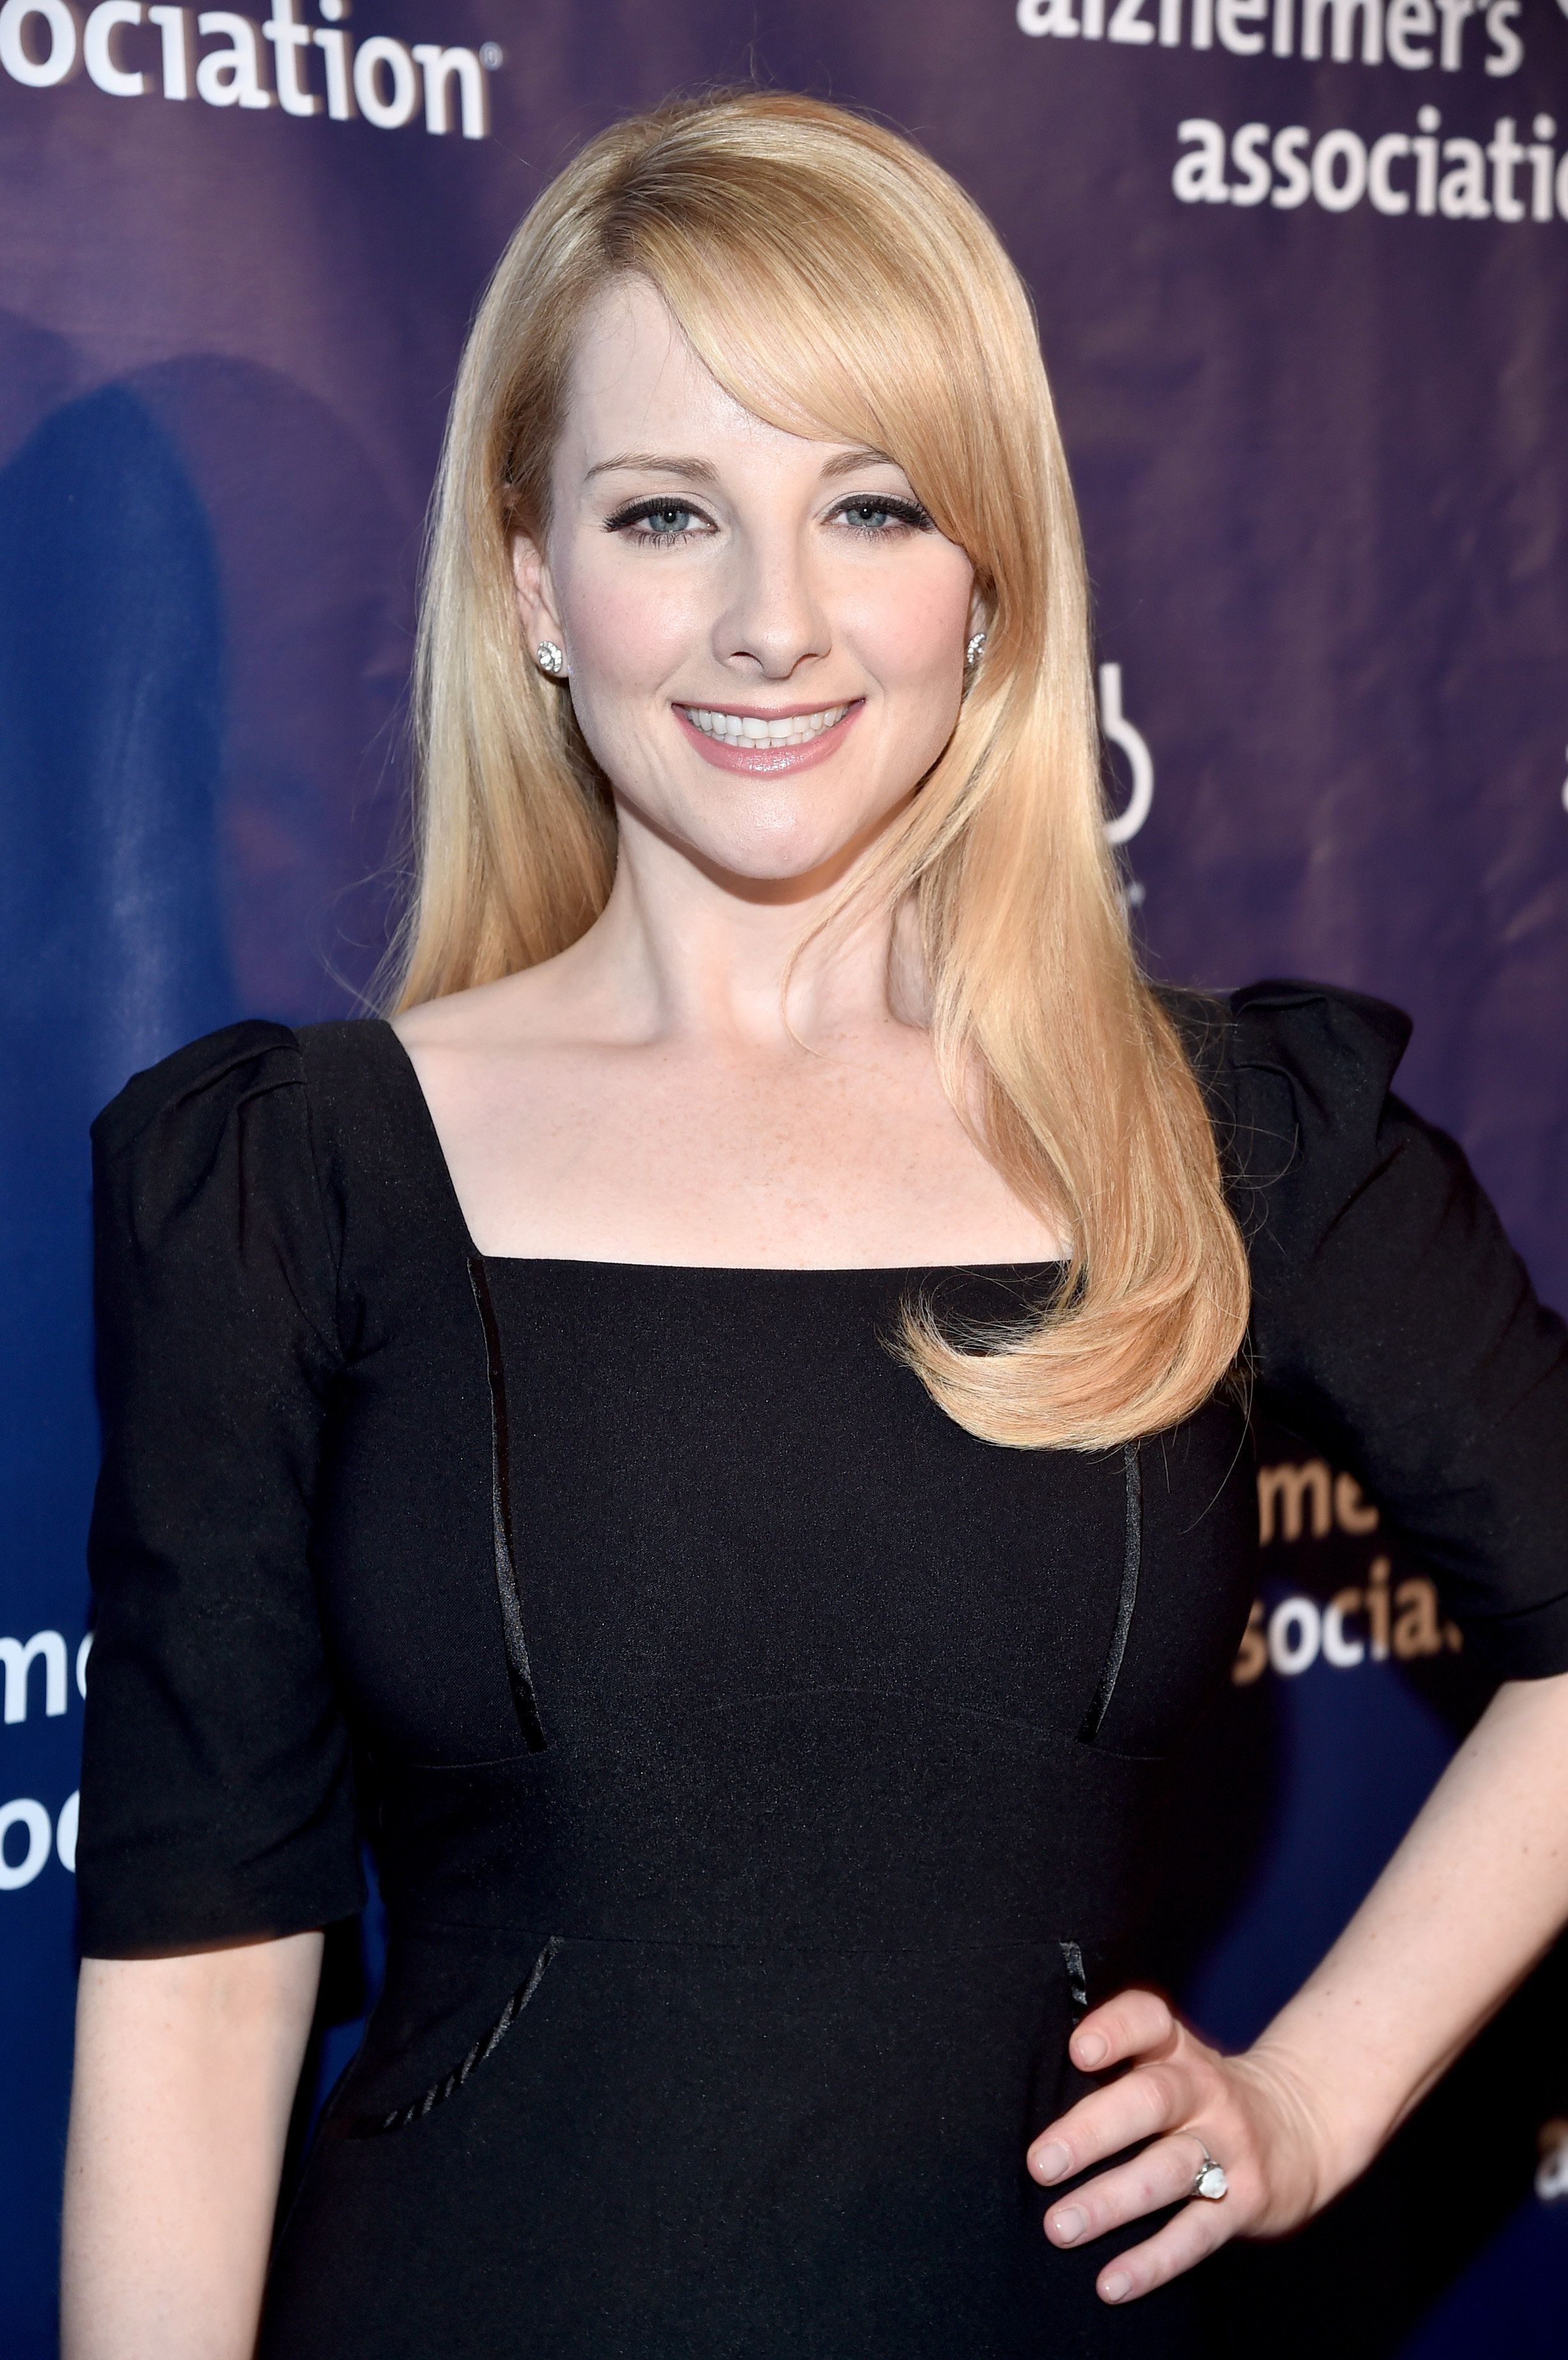 BEVERLY HILLS, CA - MARCH 09:  Actress Melissa Rauch attends the 24th and final 'A Night at Sardi's' to benefit the Alzheimer's Association at The Beverly Hilton Hotel on March 9, 2016 in Beverly Hills, California.  (Photo by Alberto E. Rodriguez/Getty Images)